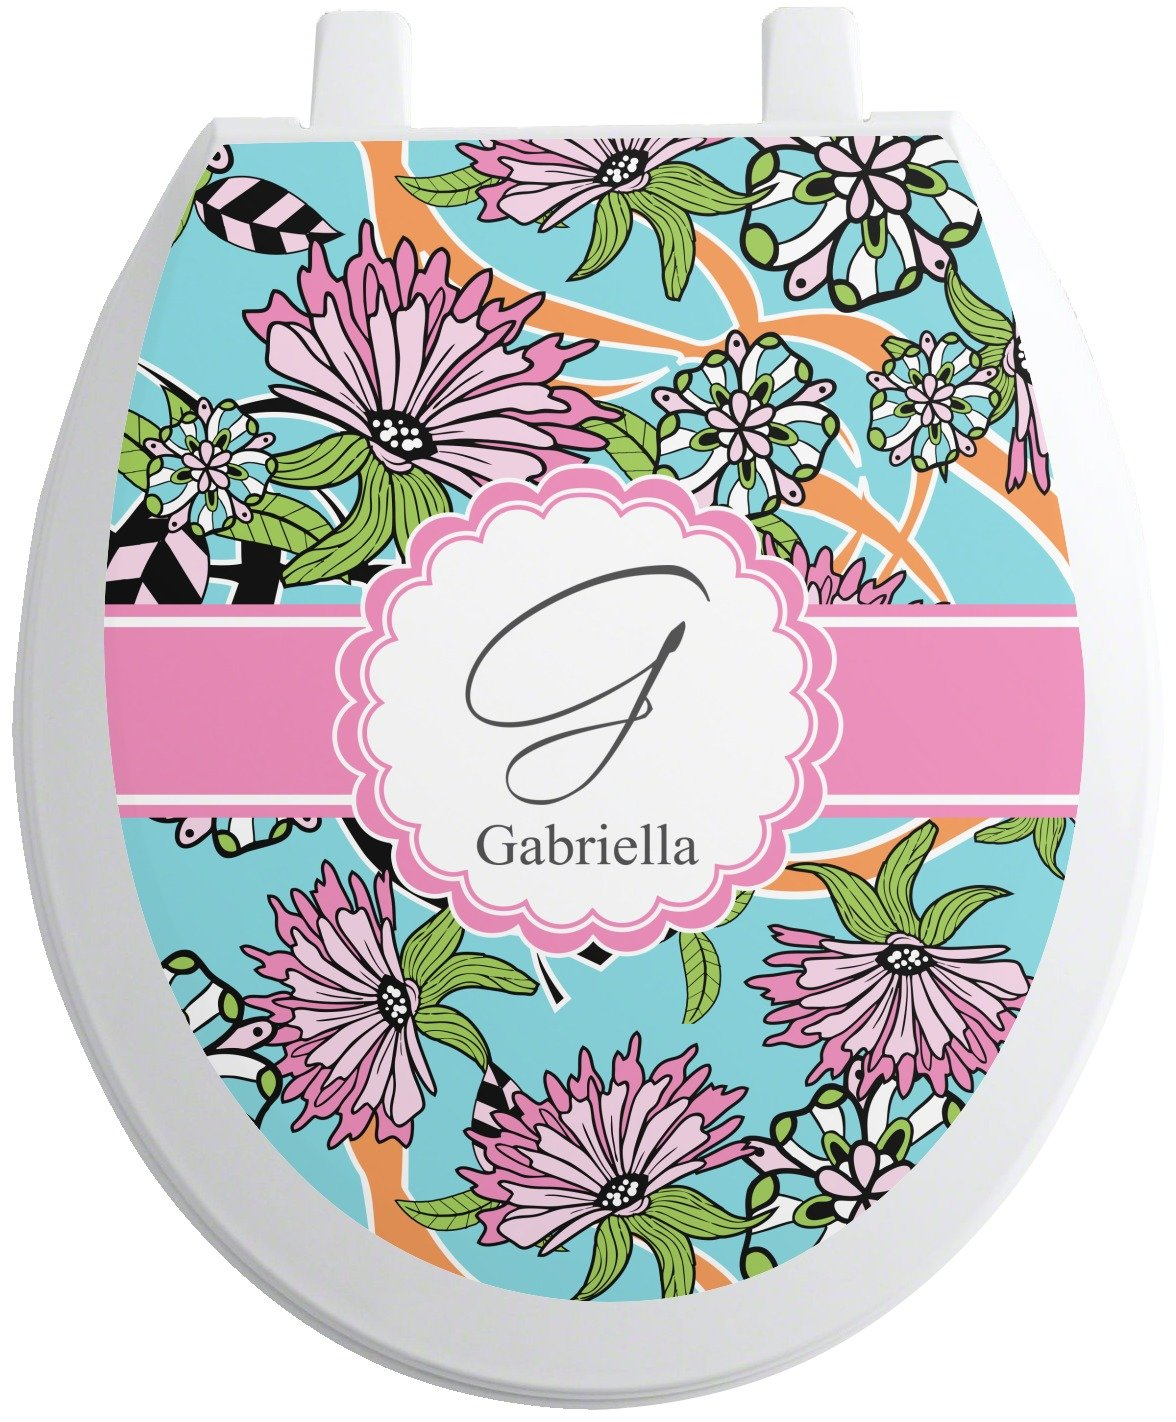 Summer Flowers Toilet Seat Decal - Round (Personalized) on sale